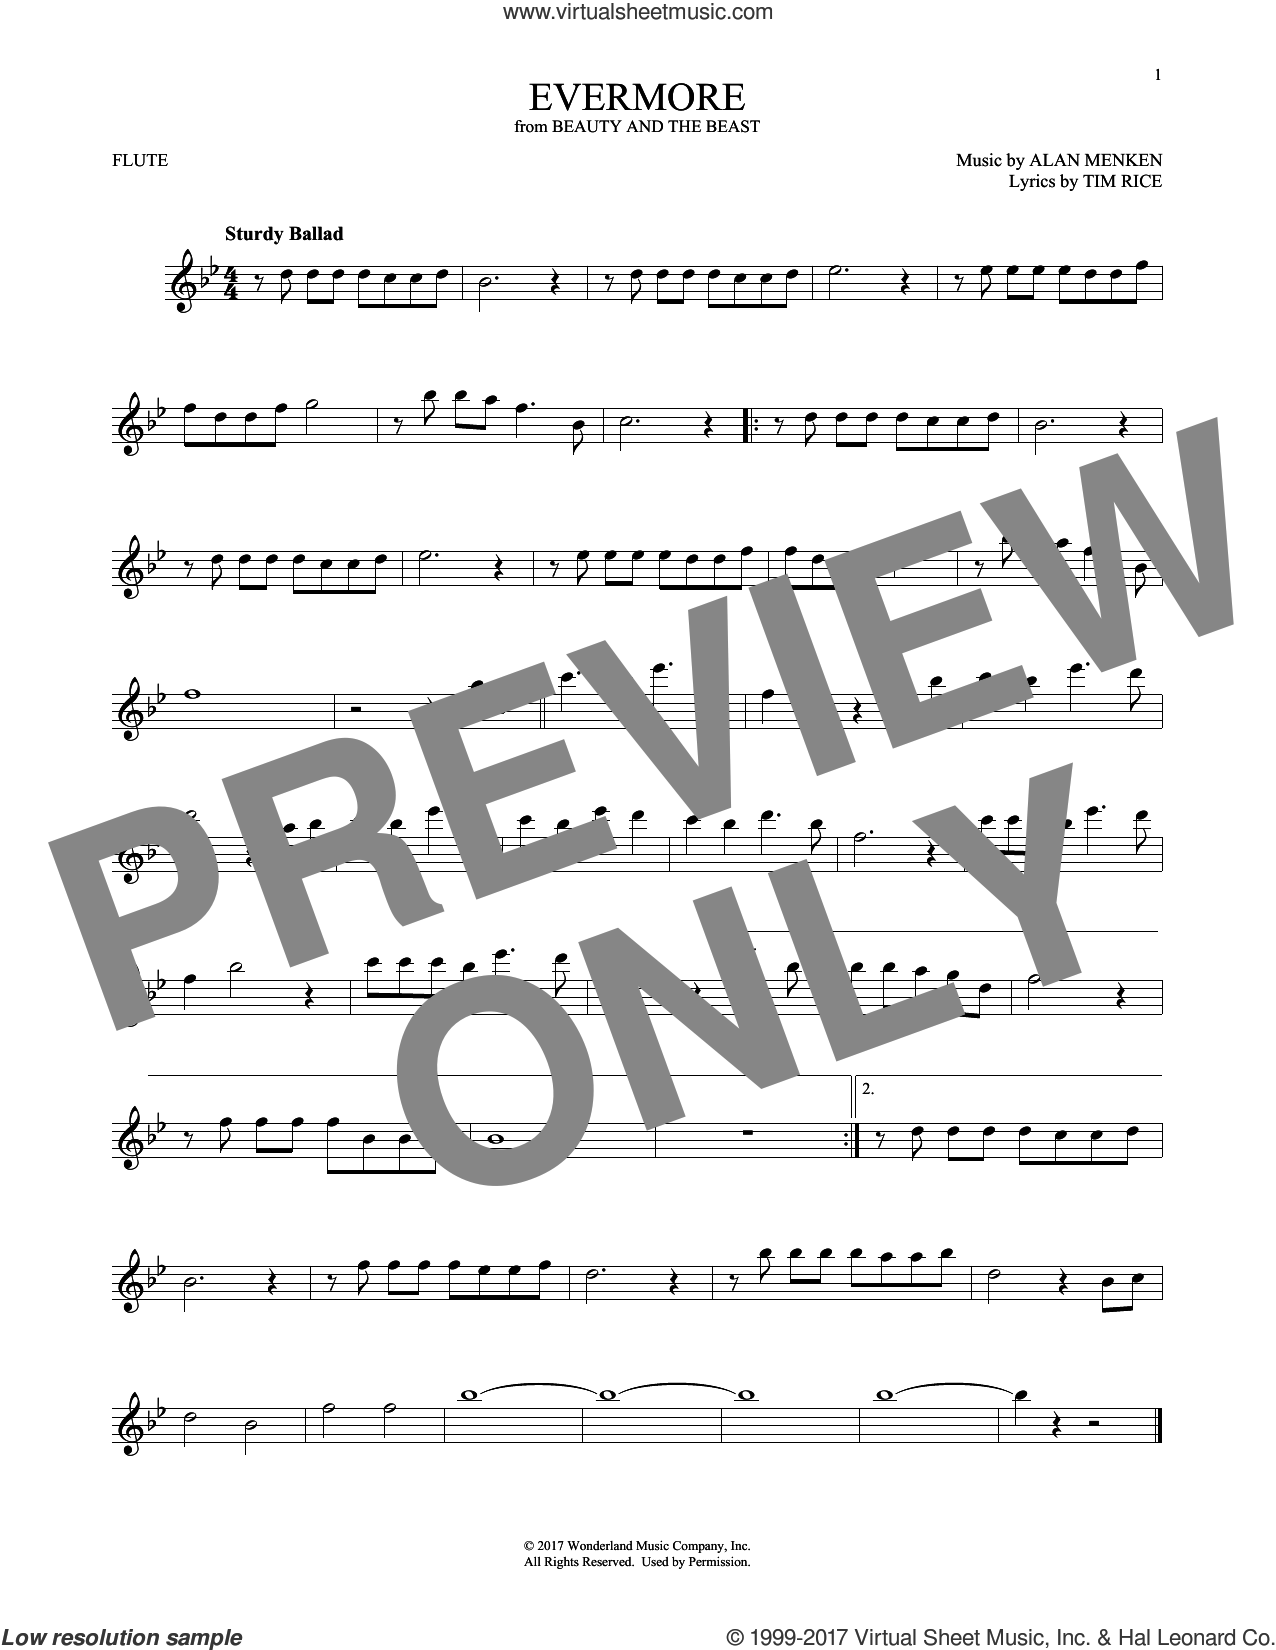 Evermore sheet music for flute solo by Josh Groban, Alan Menken and Tim Rice, intermediate skill level